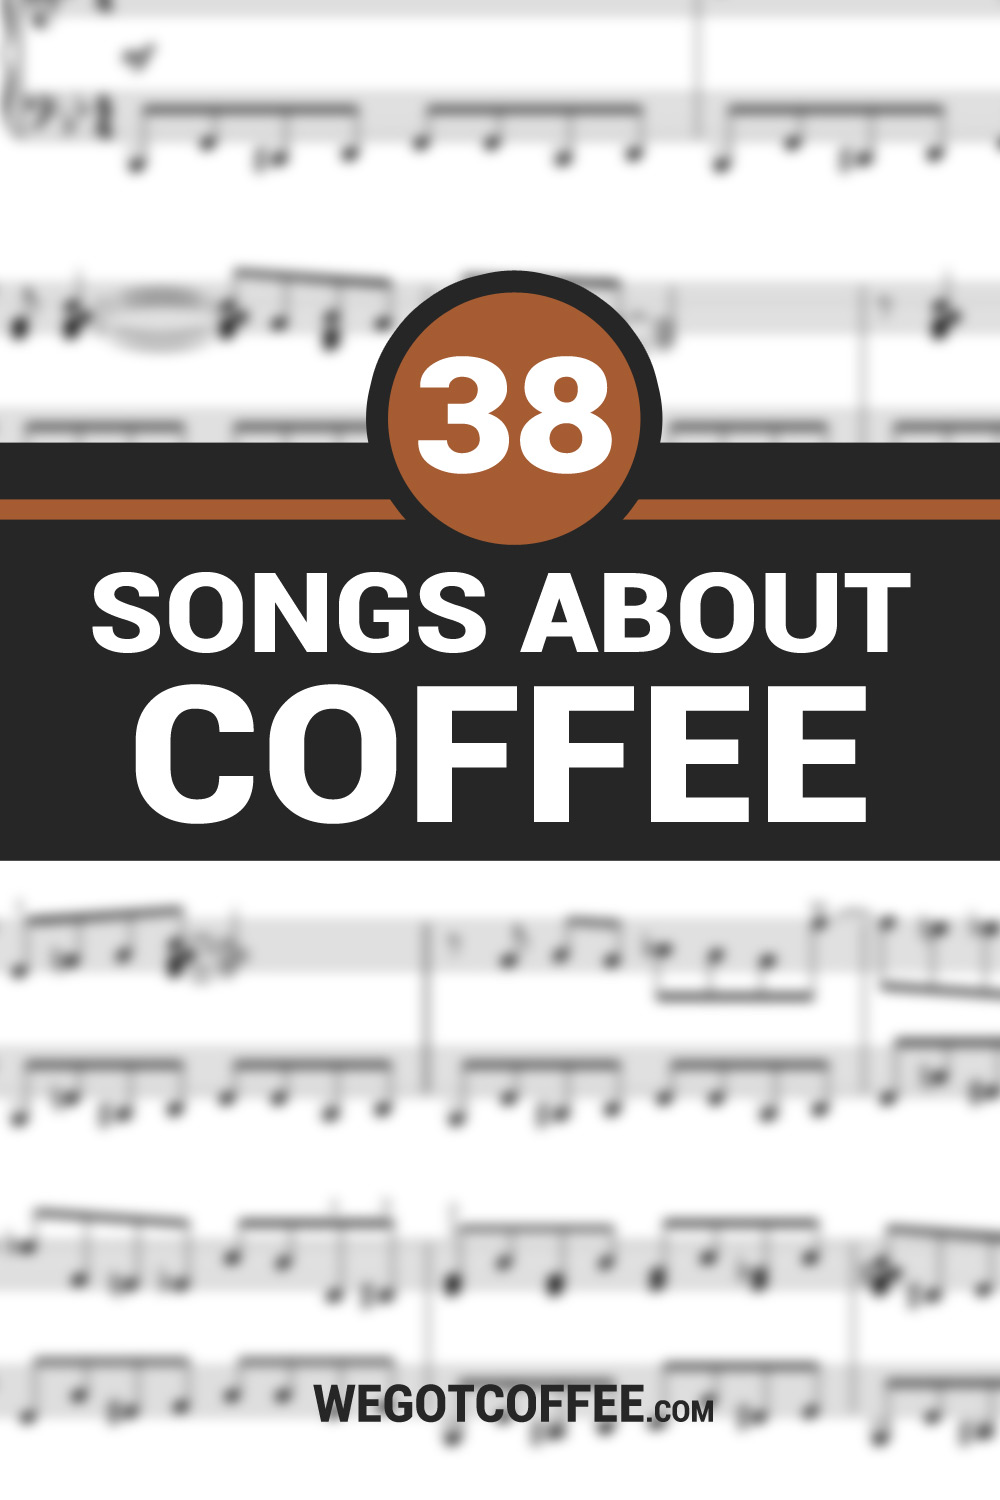 Songs about coffee